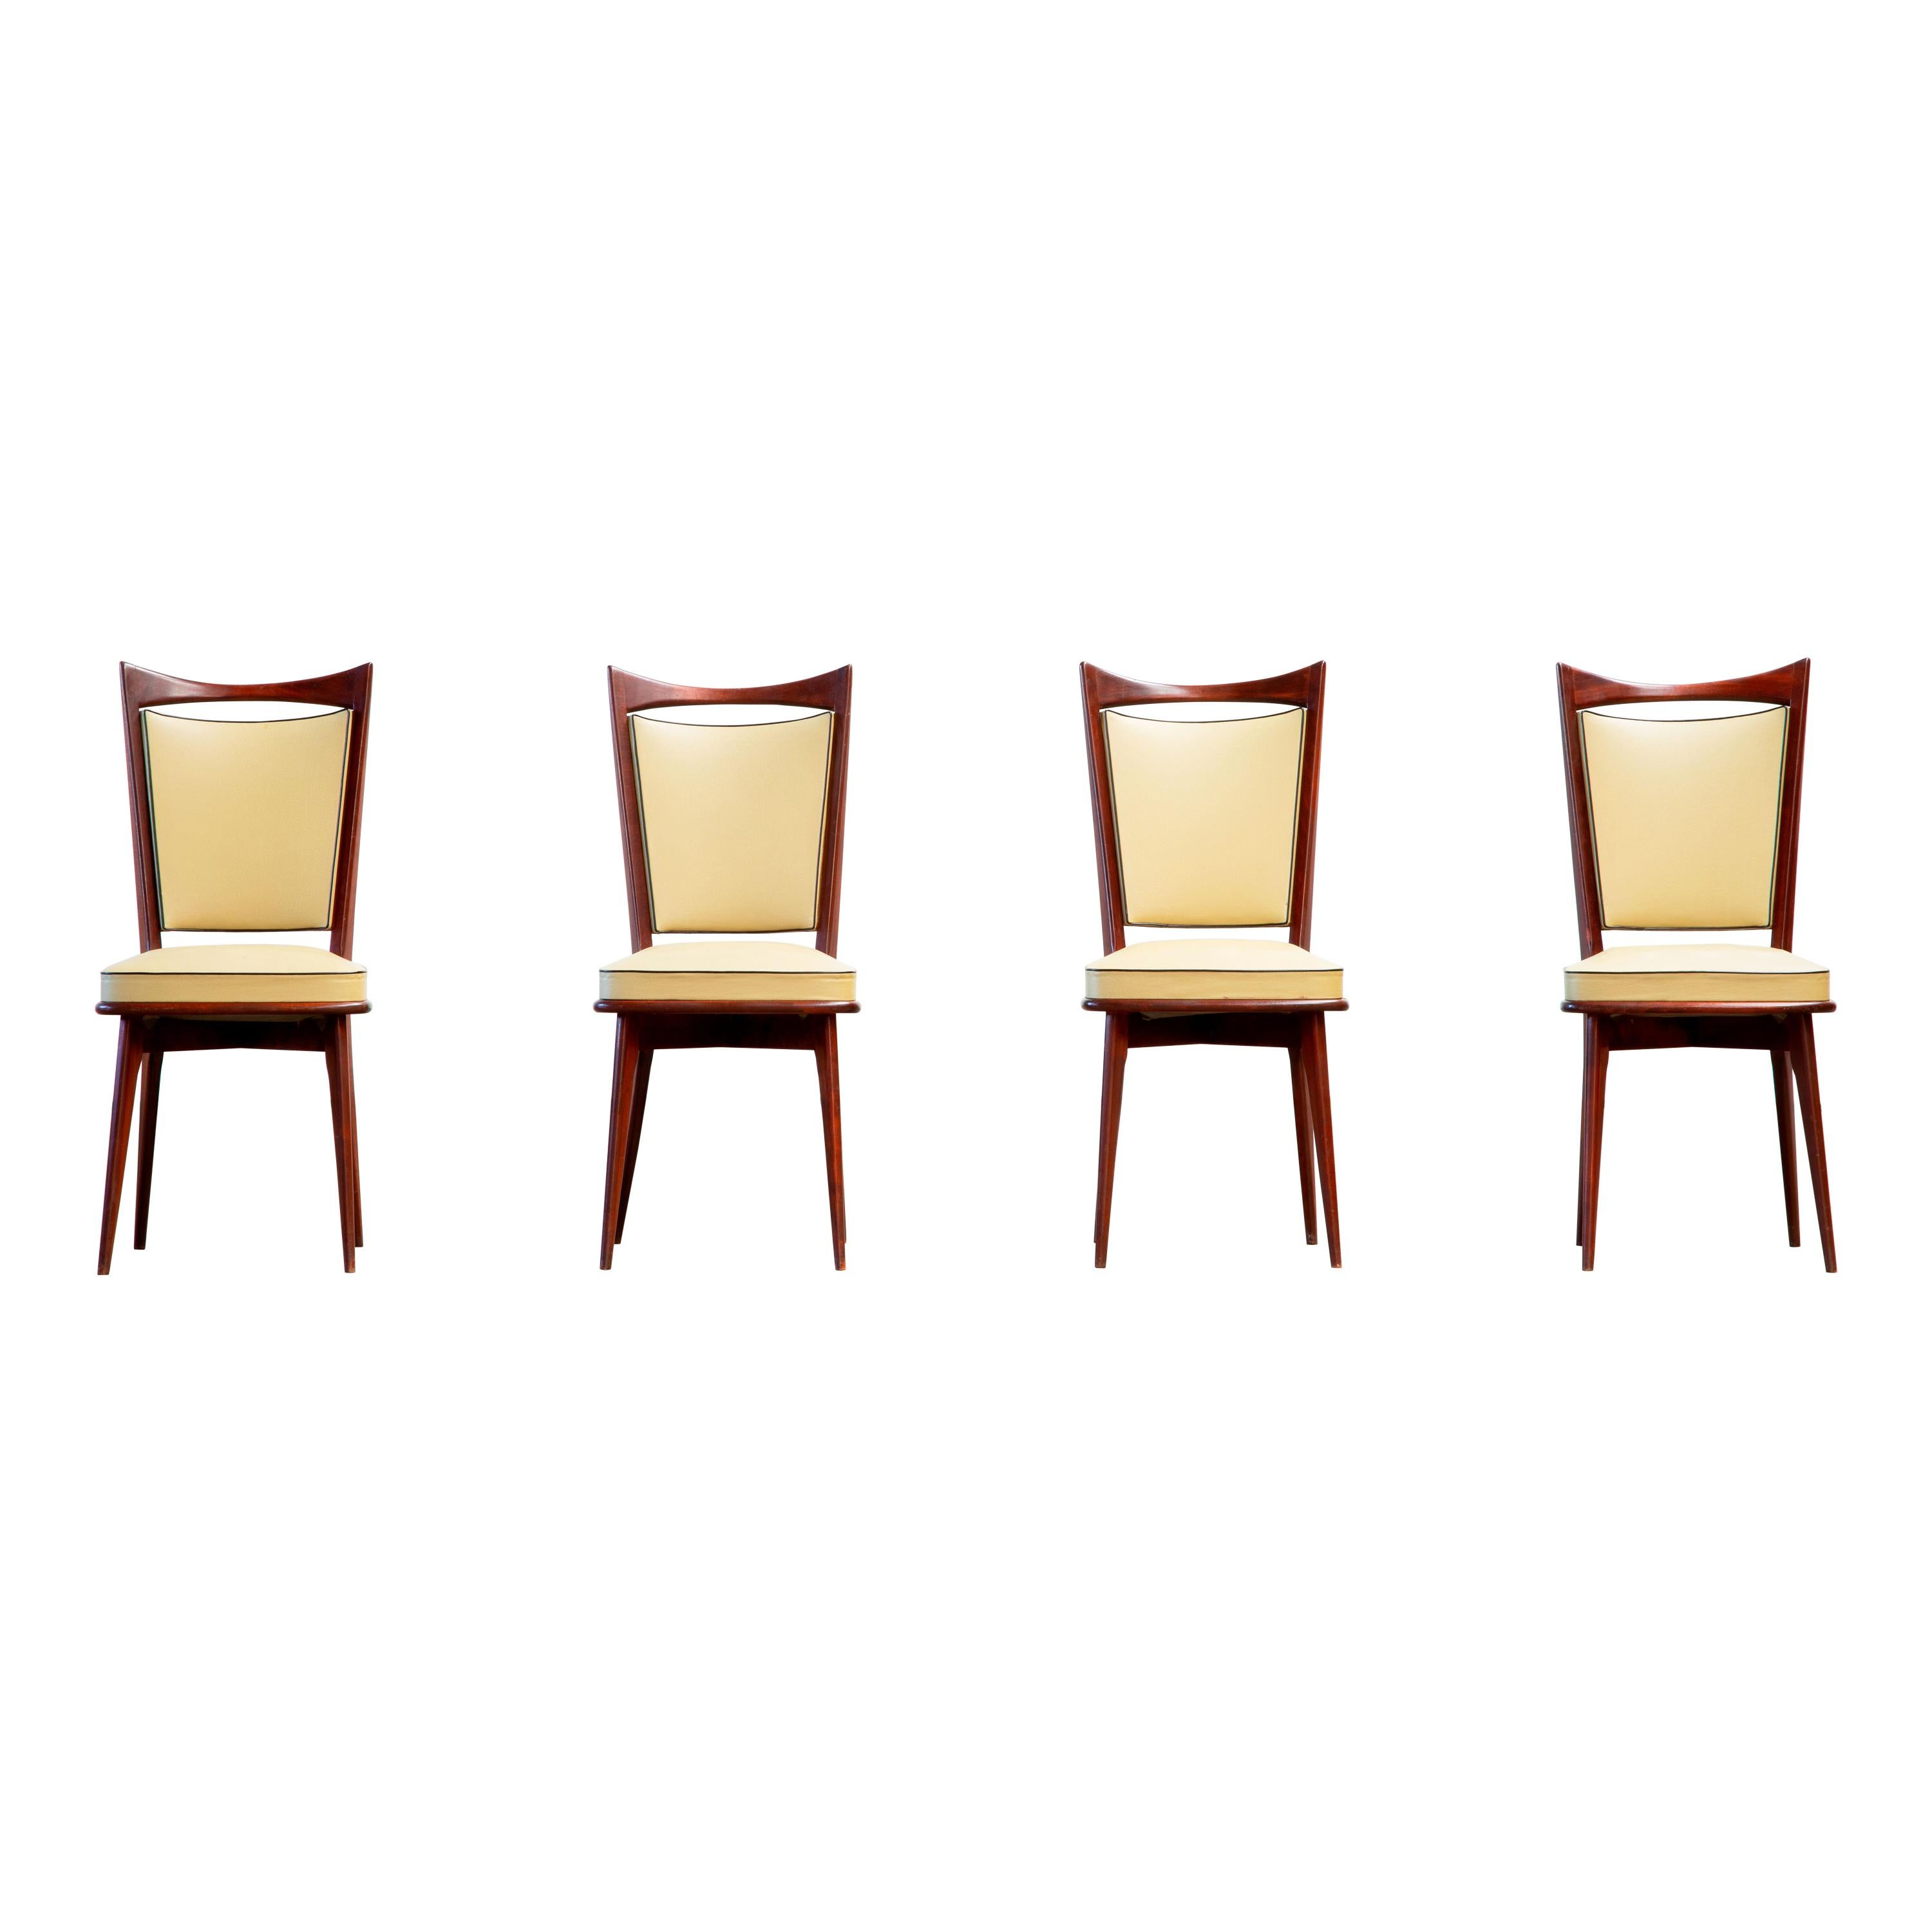 Art Deco Set of 4 Chairs, France, 1940